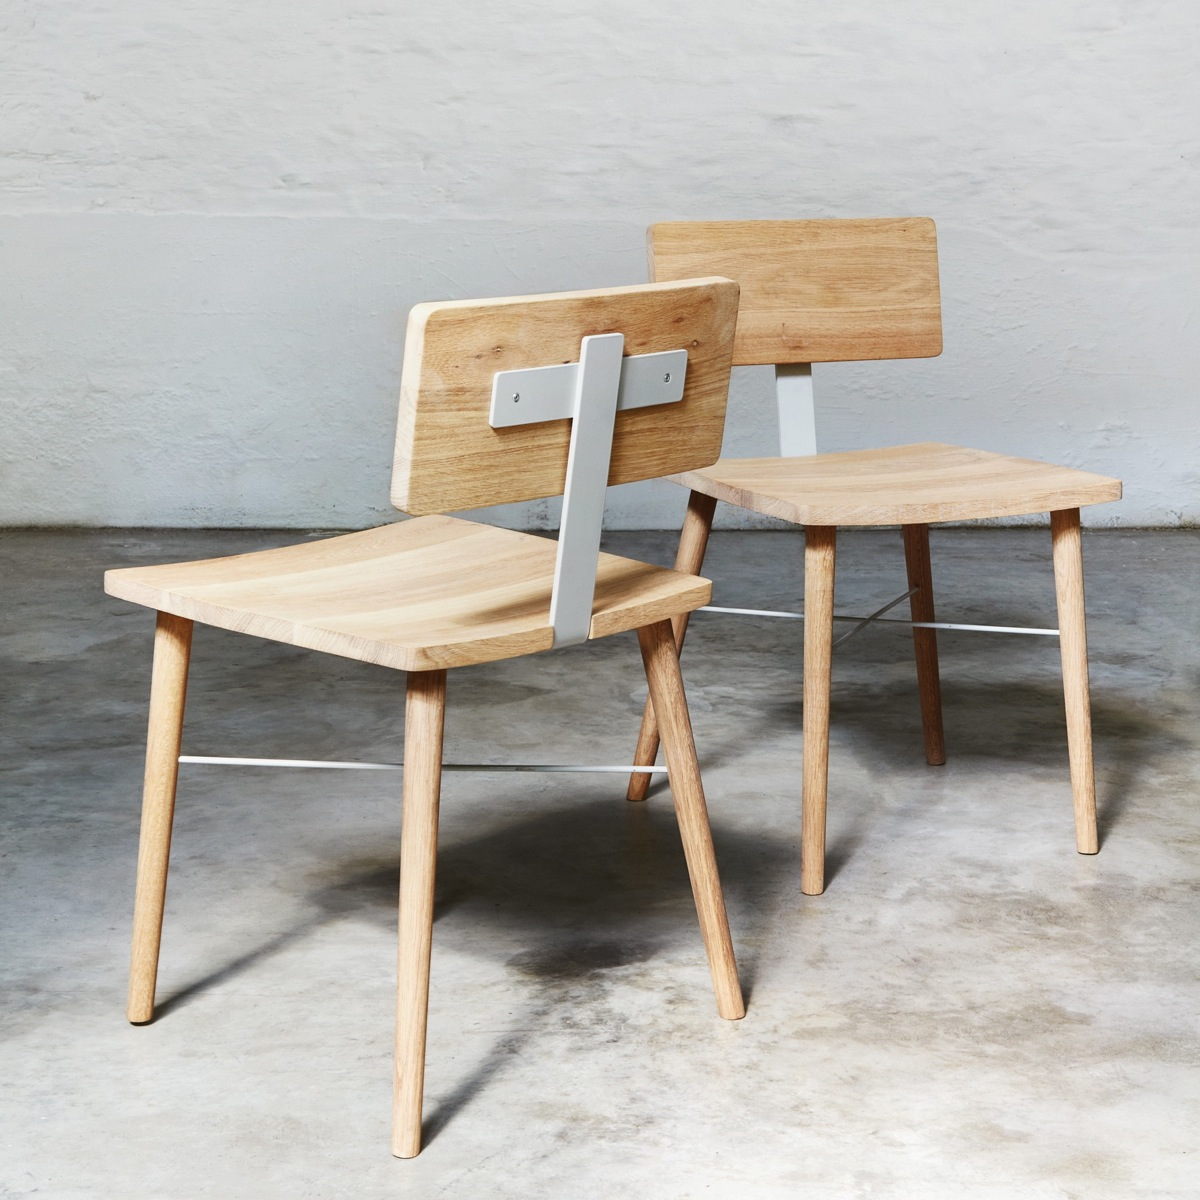 2 dowel chairs